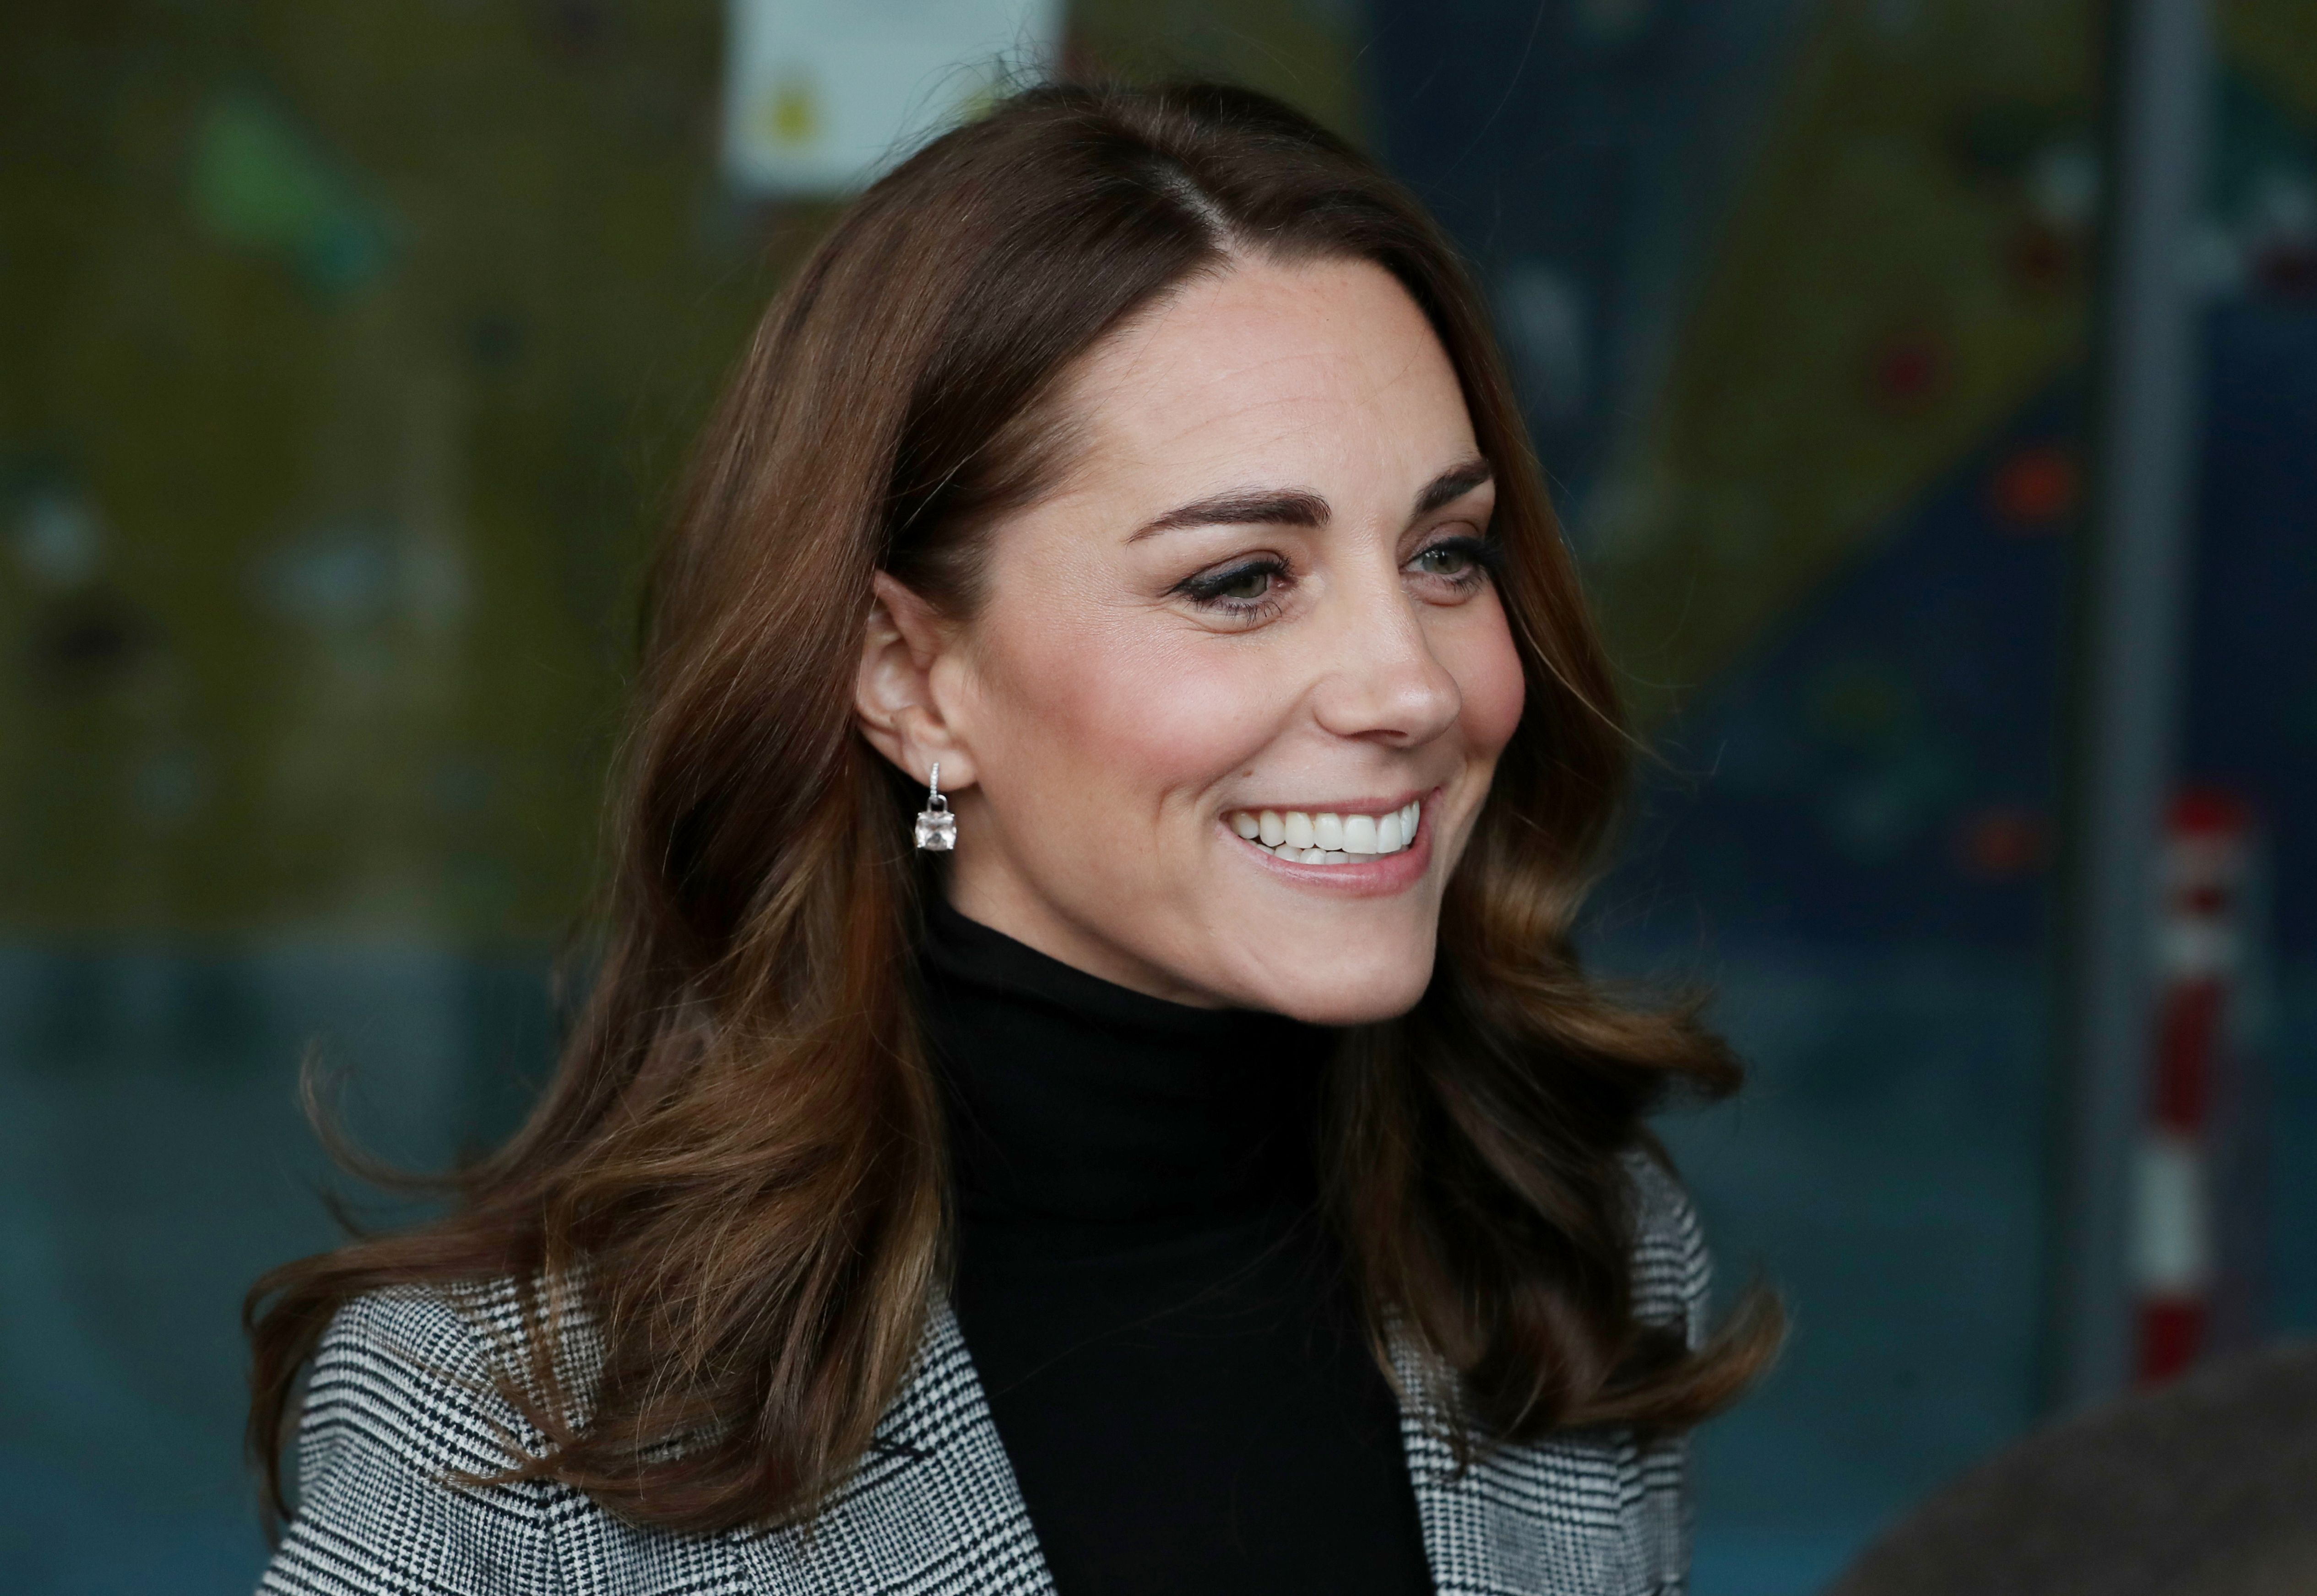 Kate Middleton opens up about the importance of family in heartfelt note